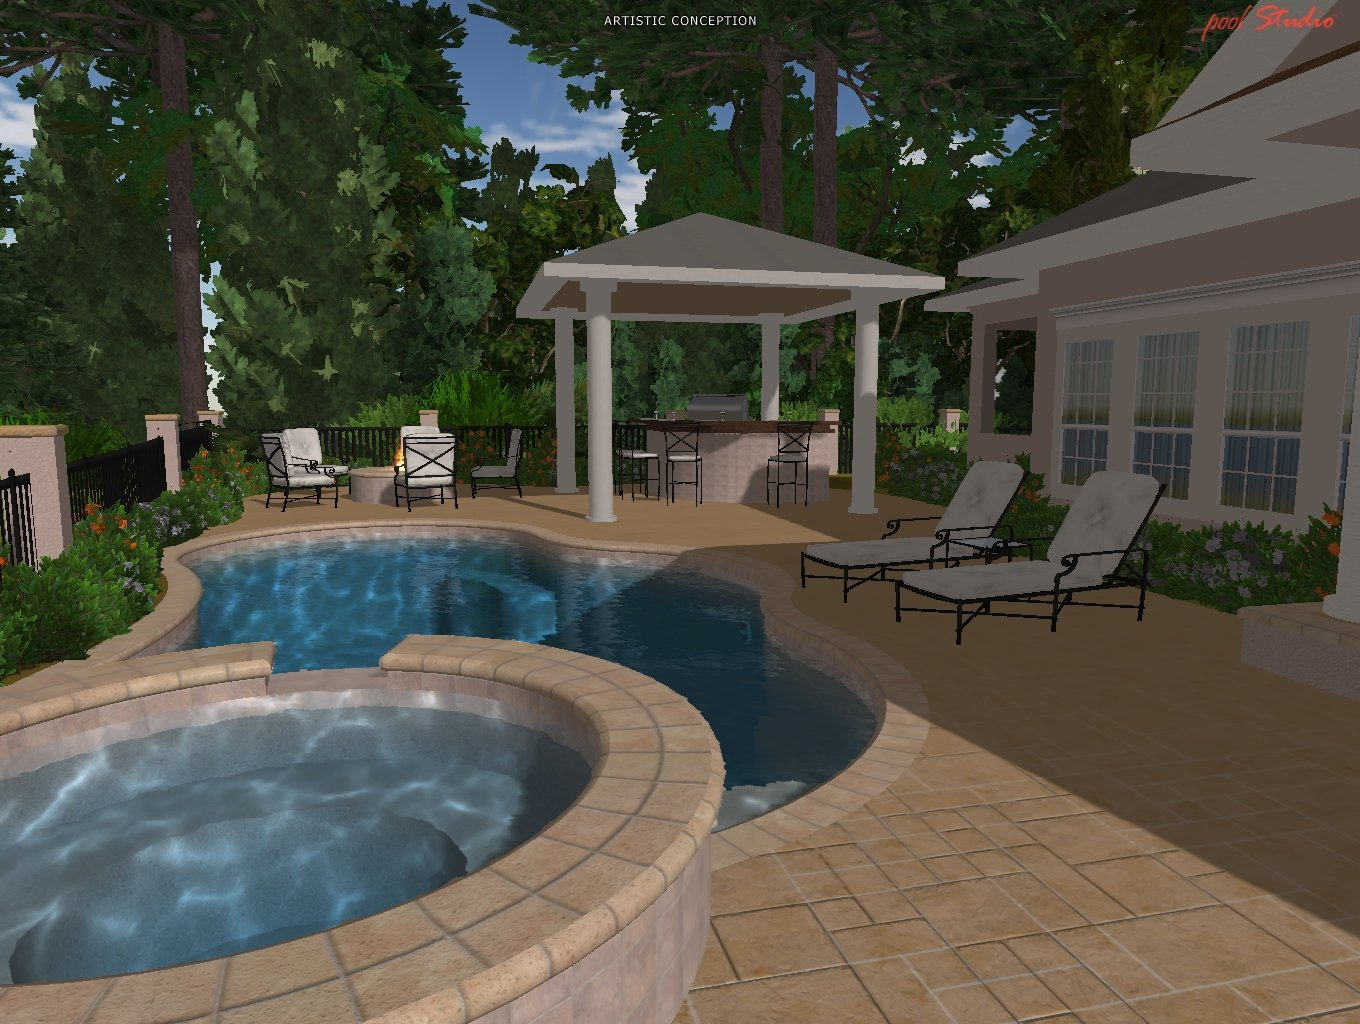 hilton head virtual pool design savannah 3d pool design